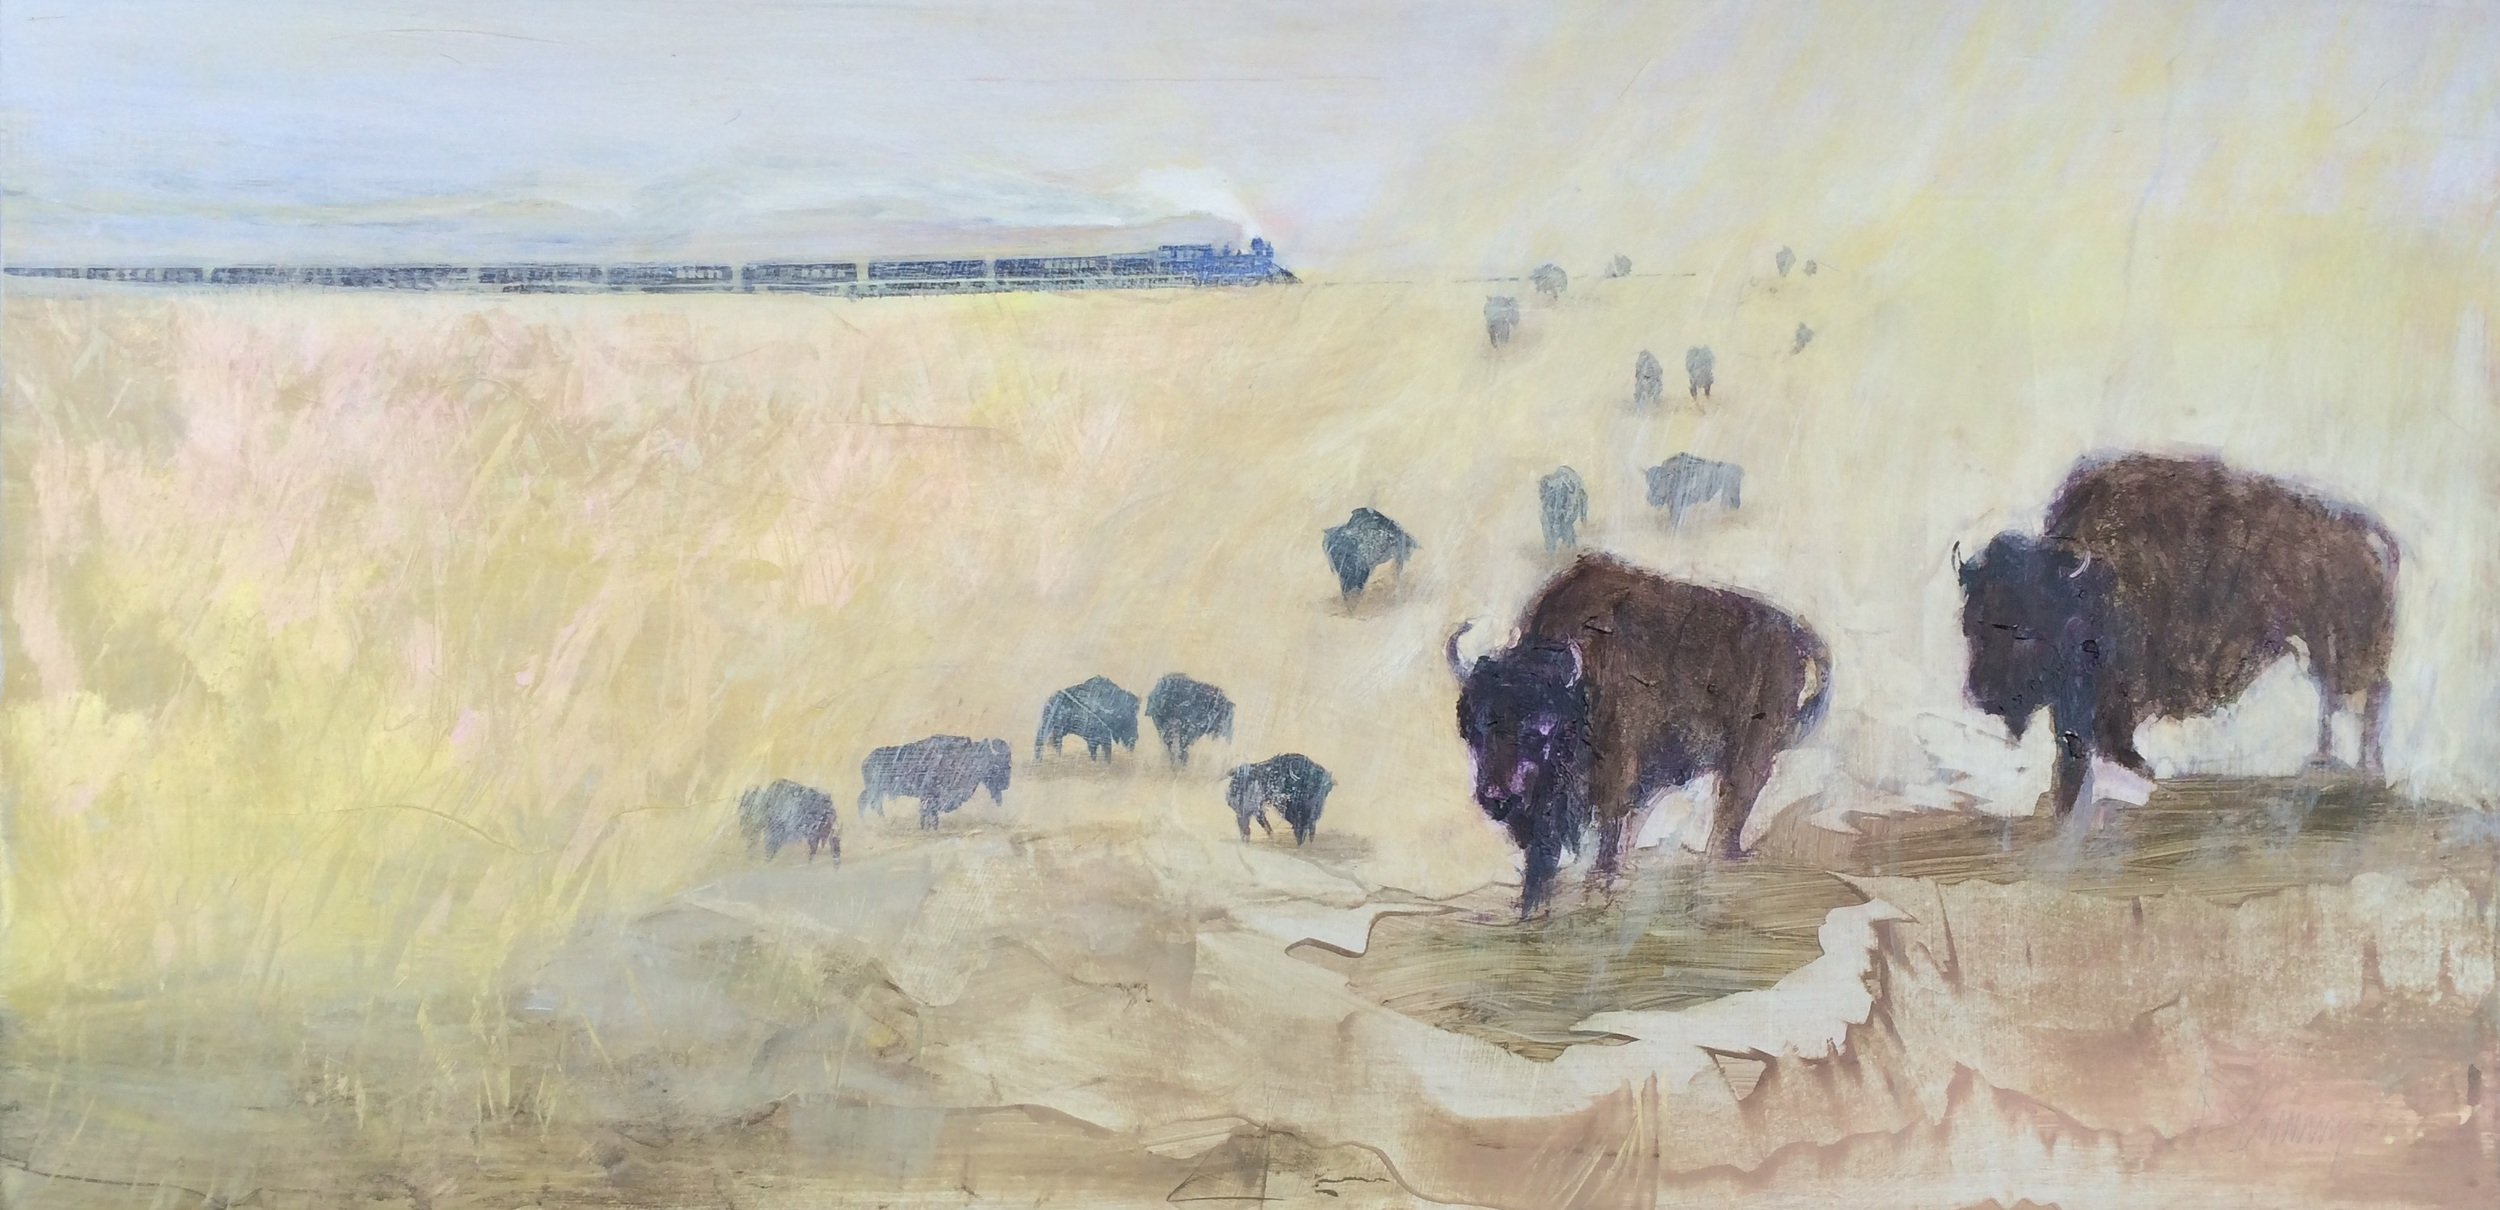 The Train The Buffalo I